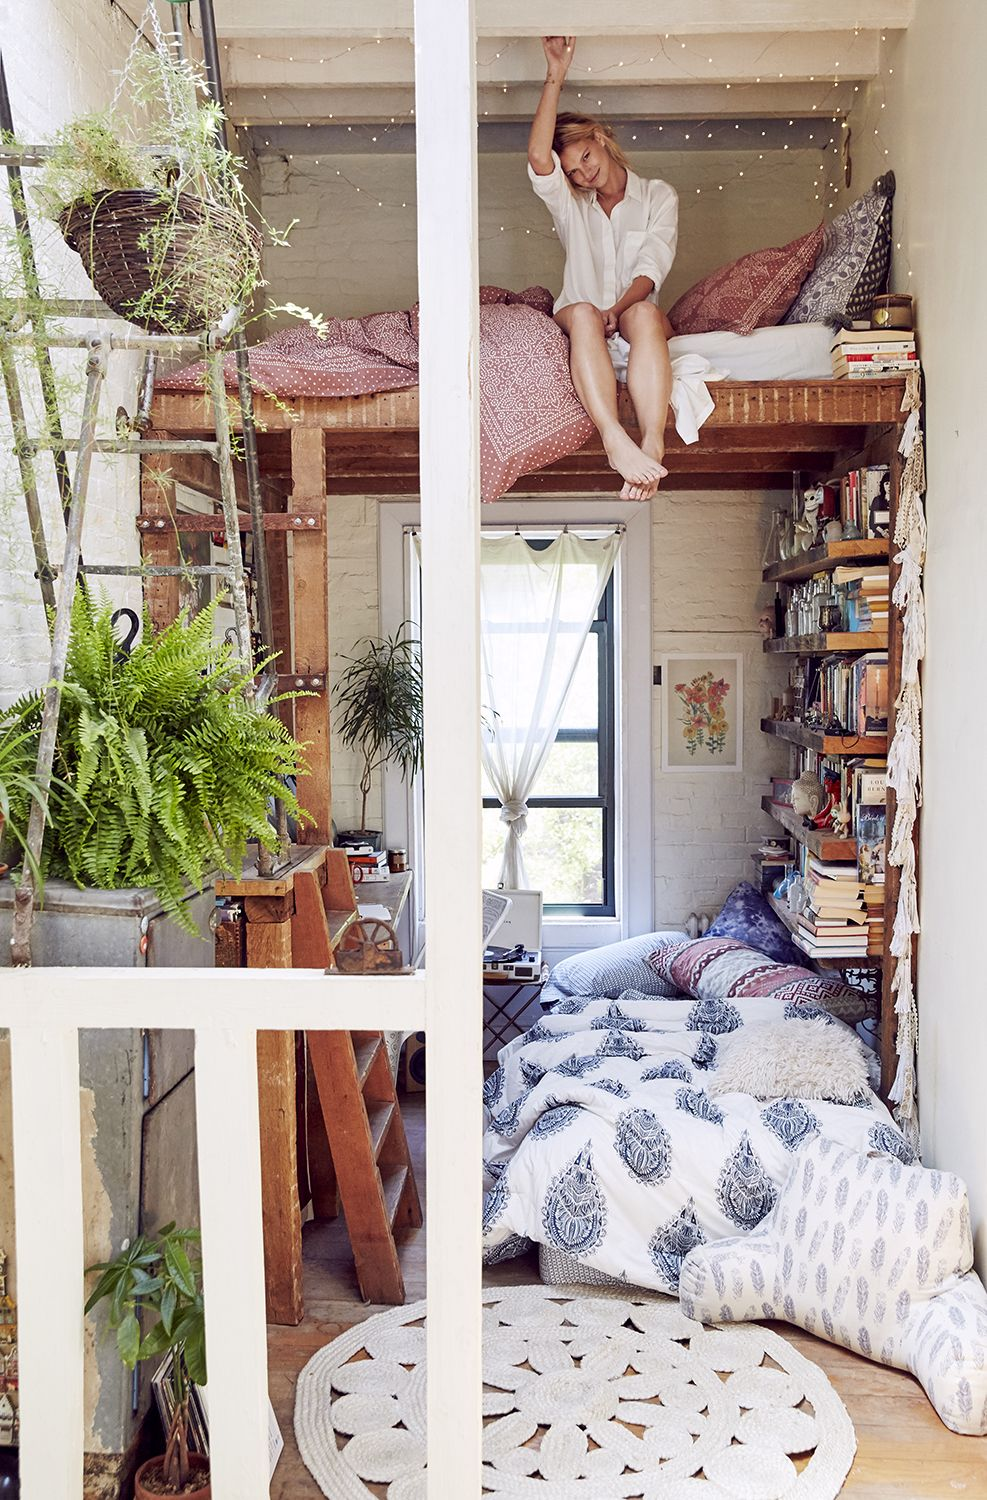 Great Iu0027m Thinking Some Sort Of Lush Hippie Chic Boho Bunk Bed Loft Lounge  Library With Secret Art Studio Closet And Chillout Situation/panic Room  Might Be My New ...